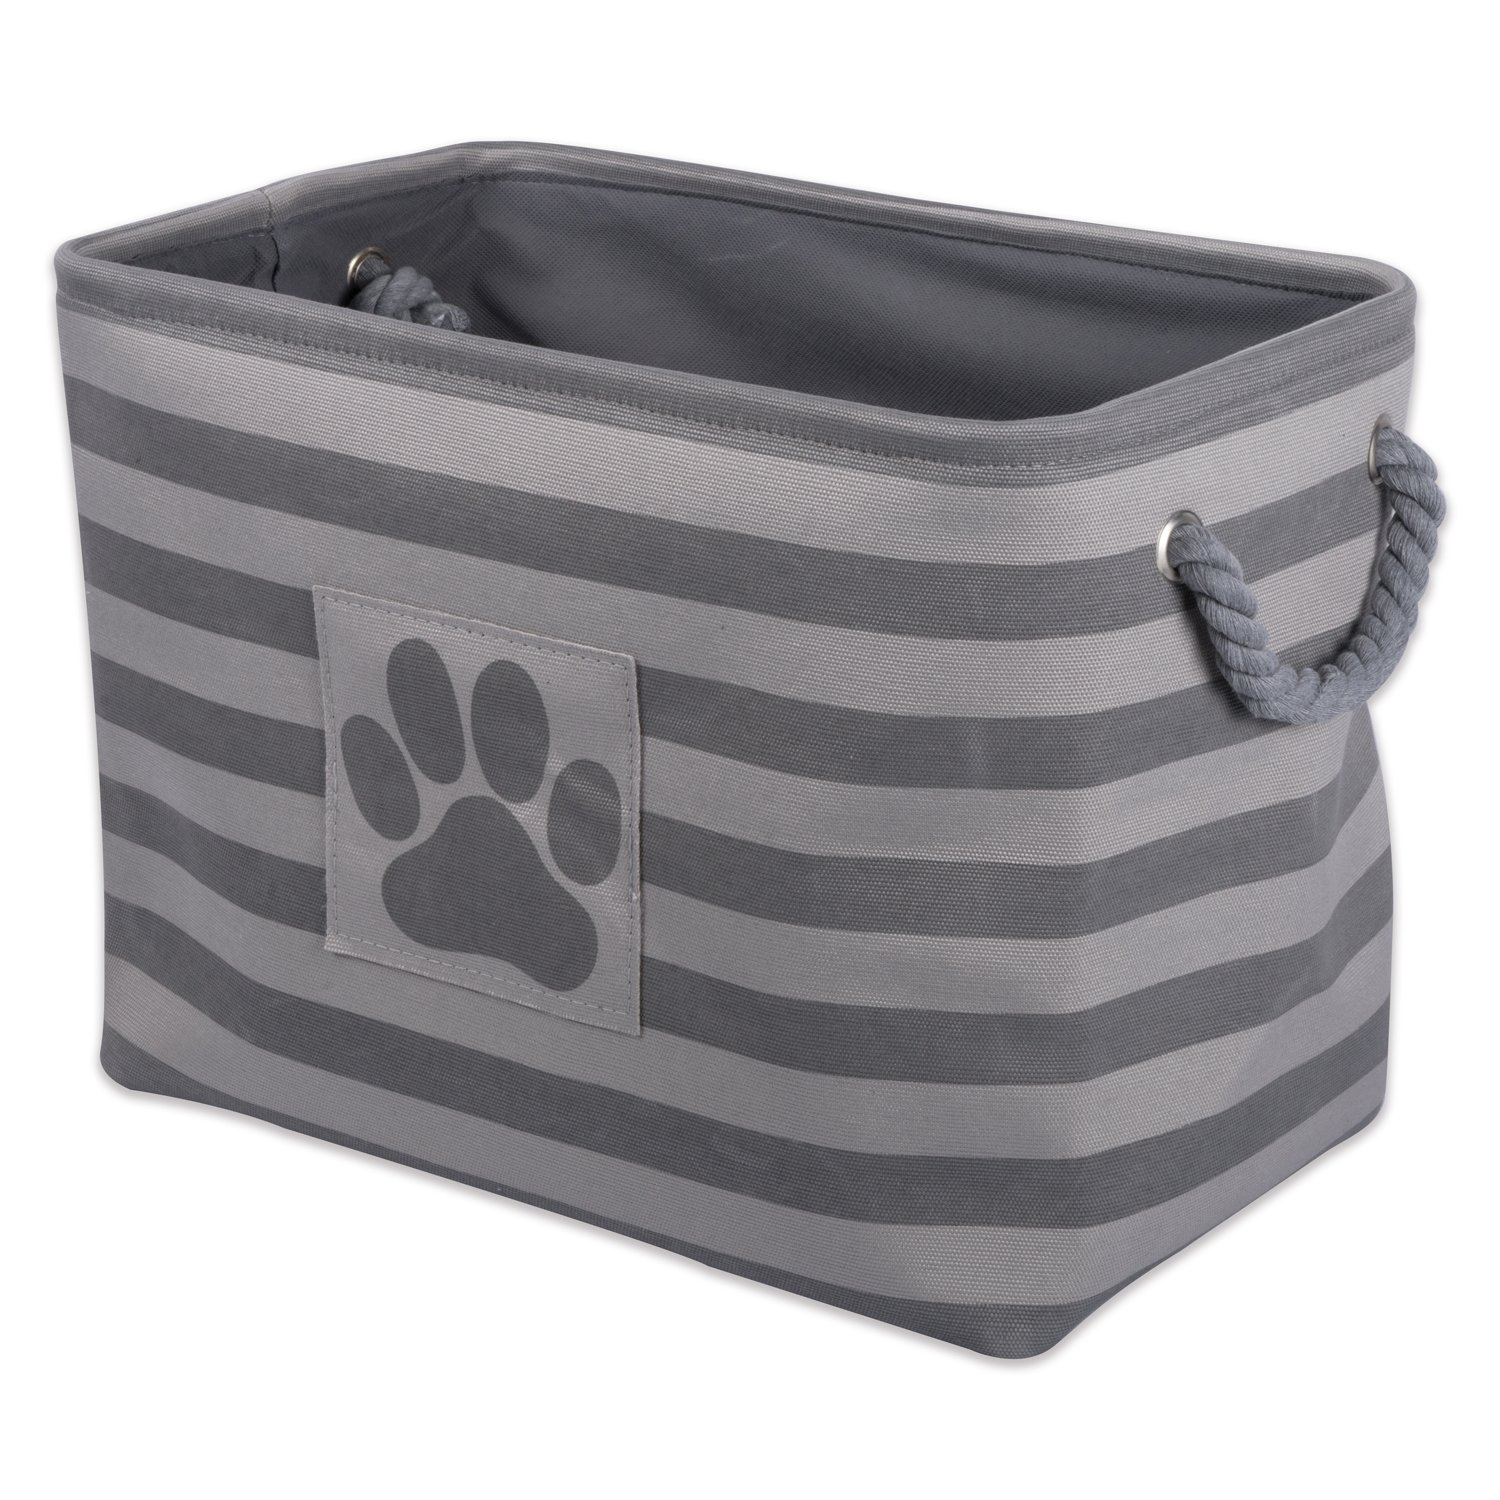 Bone Dry DII Large Rectangle Pet Toy and Accessory Storage Bin, 18x12x15, Collapsible Organizer Storage Basket for Home Décor, Pet Toy, Blankets, Leashes and Food-Gray Stripes